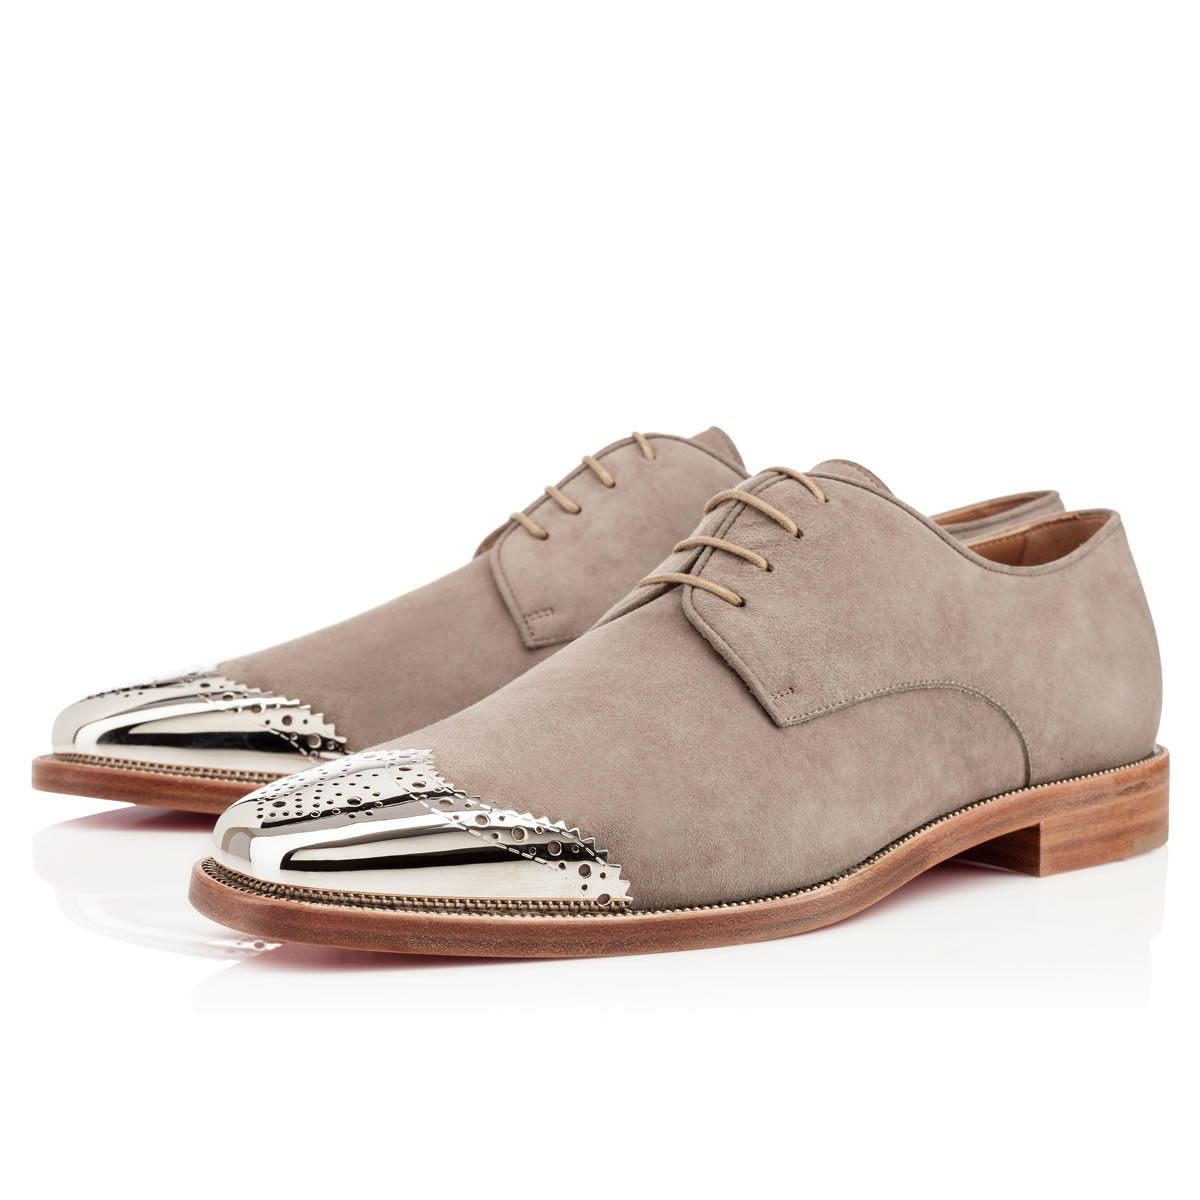 281df83d2829 ... new style gareth zip mens flat mastic suede christian louboutin  whataman quelhomme 9a1e5 31eef